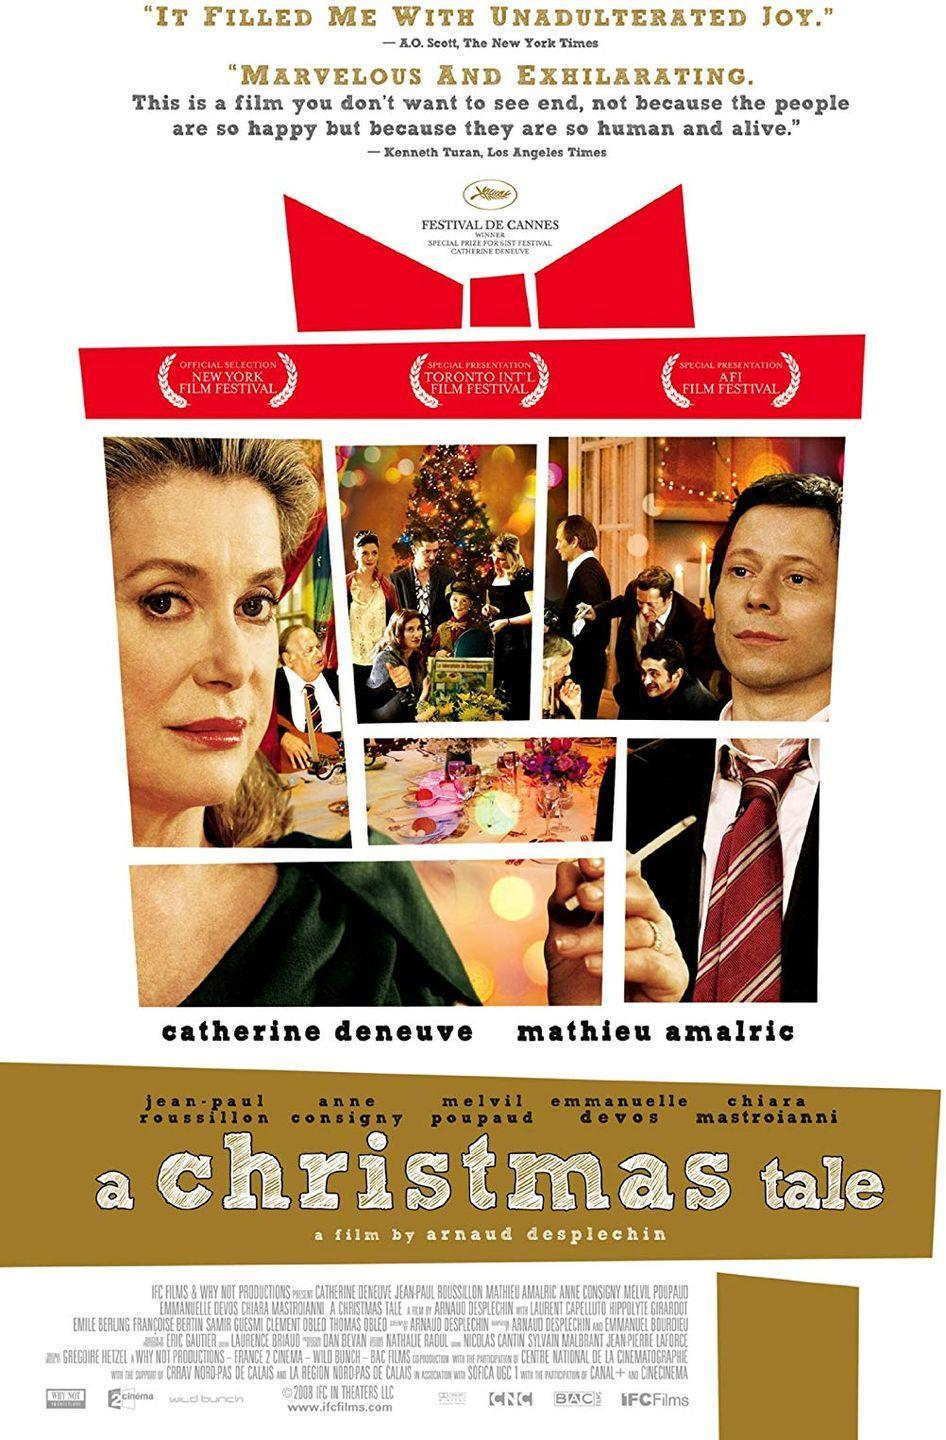 """<p>Even if you haven't heard of this 2008 French film before, this family drama set during Christmas and starring Catherine Deneuve is worth adding to your must-watch list.</p><p><a class=""""link rapid-noclick-resp"""" href=""""https://www.amazon.com/Christmas-Tale-English-Subtitled/dp/B003A8YX3O/?tag=syn-yahoo-20&ascsubtag=%5Bartid%7C10055.g.1315%5Bsrc%7Cyahoo-us"""" rel=""""nofollow noopener"""" target=""""_blank"""" data-ylk=""""slk:WATCH NOW"""">WATCH NOW</a></p><p><strong>RELATED: </strong><a href=""""https://www.goodhousekeeping.com/life/entertainment/g28860652/best-drama-movies-on-netflix/"""" rel=""""nofollow noopener"""" target=""""_blank"""" data-ylk=""""slk:25 Best Drama Movies on Netflix You'll Want to Watch Over and Over"""" class=""""link rapid-noclick-resp"""">25 Best Drama Movies on Netflix You'll Want to Watch Over and Over</a></p>"""